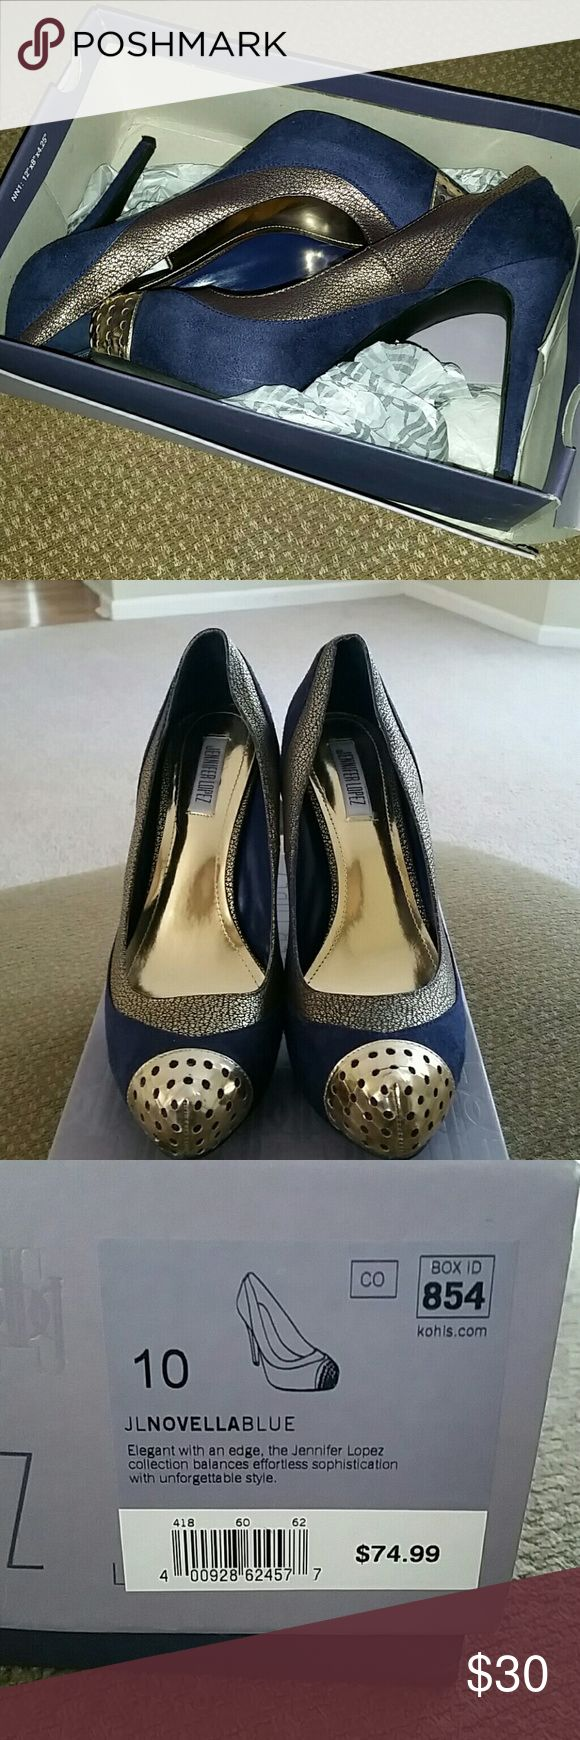 "Jennifer Lopez size 10 Platform Pumps JLO Platform Pumps ""JLNOVELLABLUE"" Worn one time, heel height 4.5"" size 10 Perfect addition to any wardrobe. Jennifer Lopez Shoes Platforms"